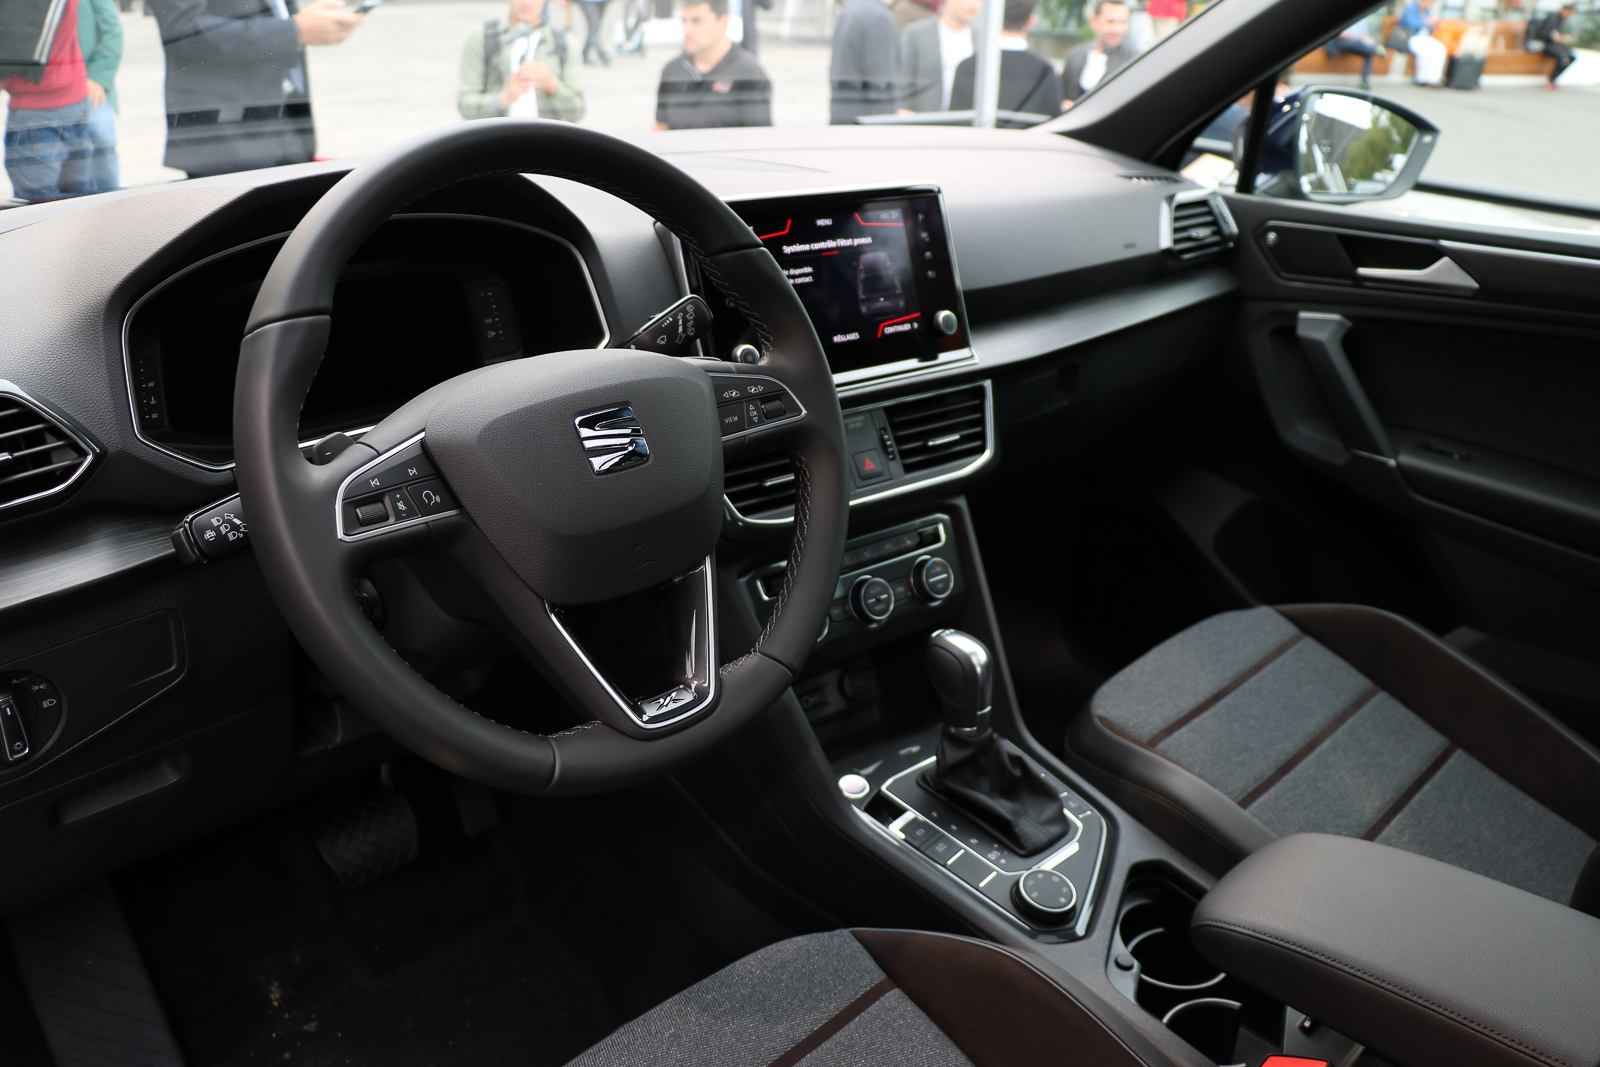 2019 seat tarraco das gr te suv von seat rollt 2019 auf. Black Bedroom Furniture Sets. Home Design Ideas